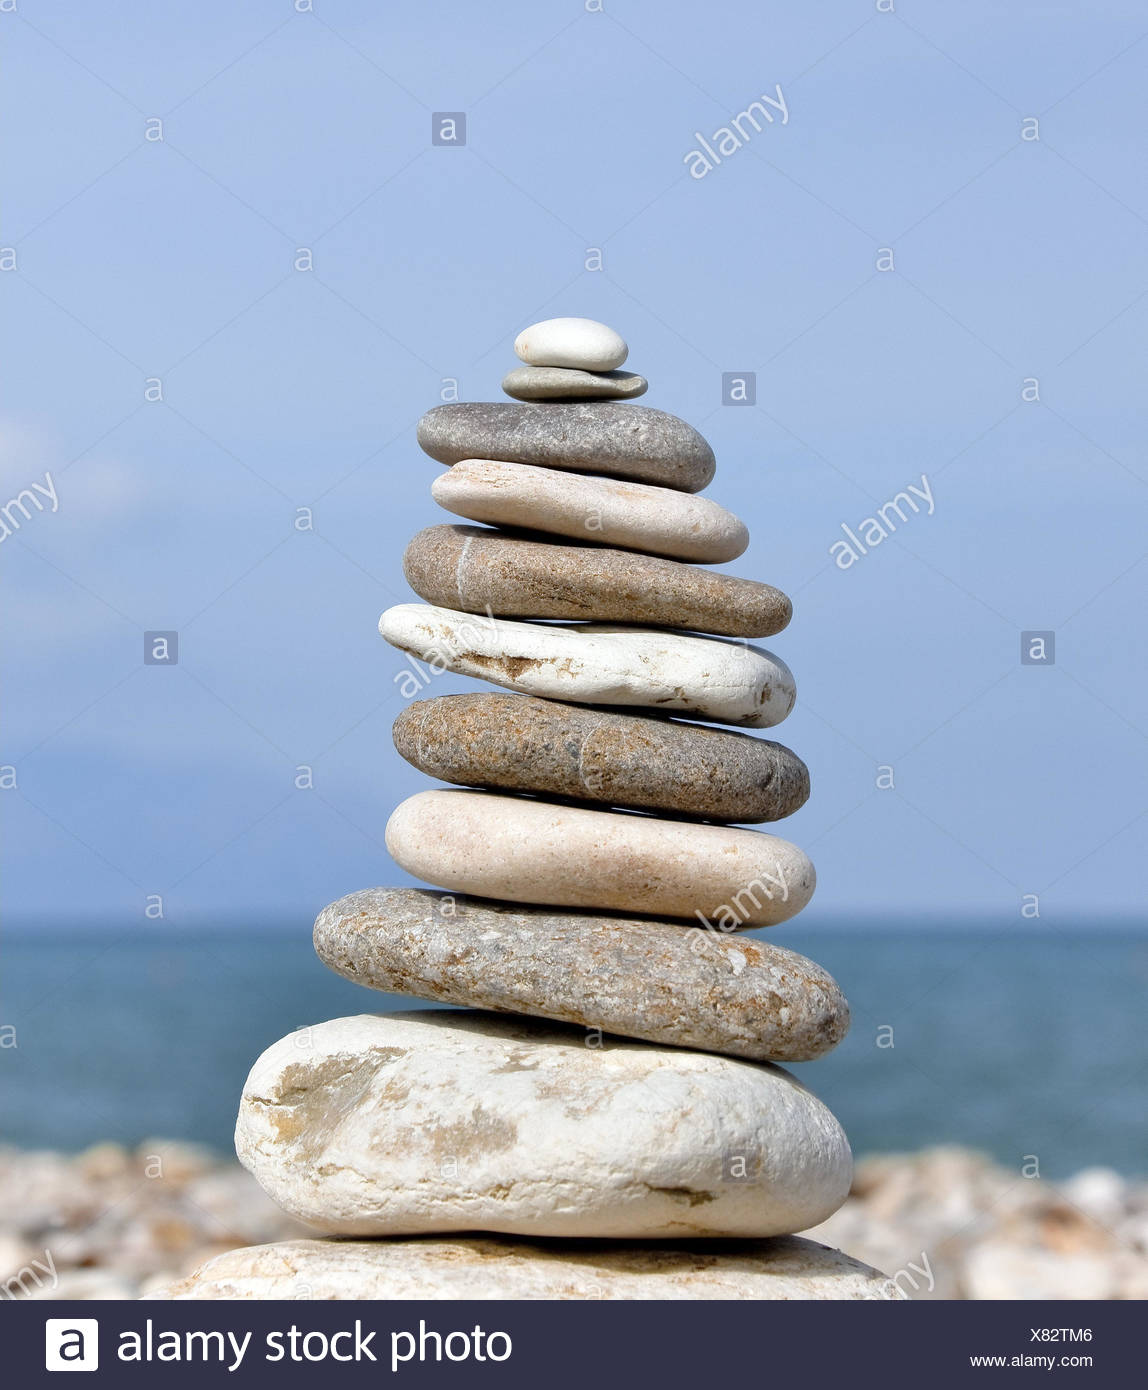 Stone tower, pile, outside, - Stock Image